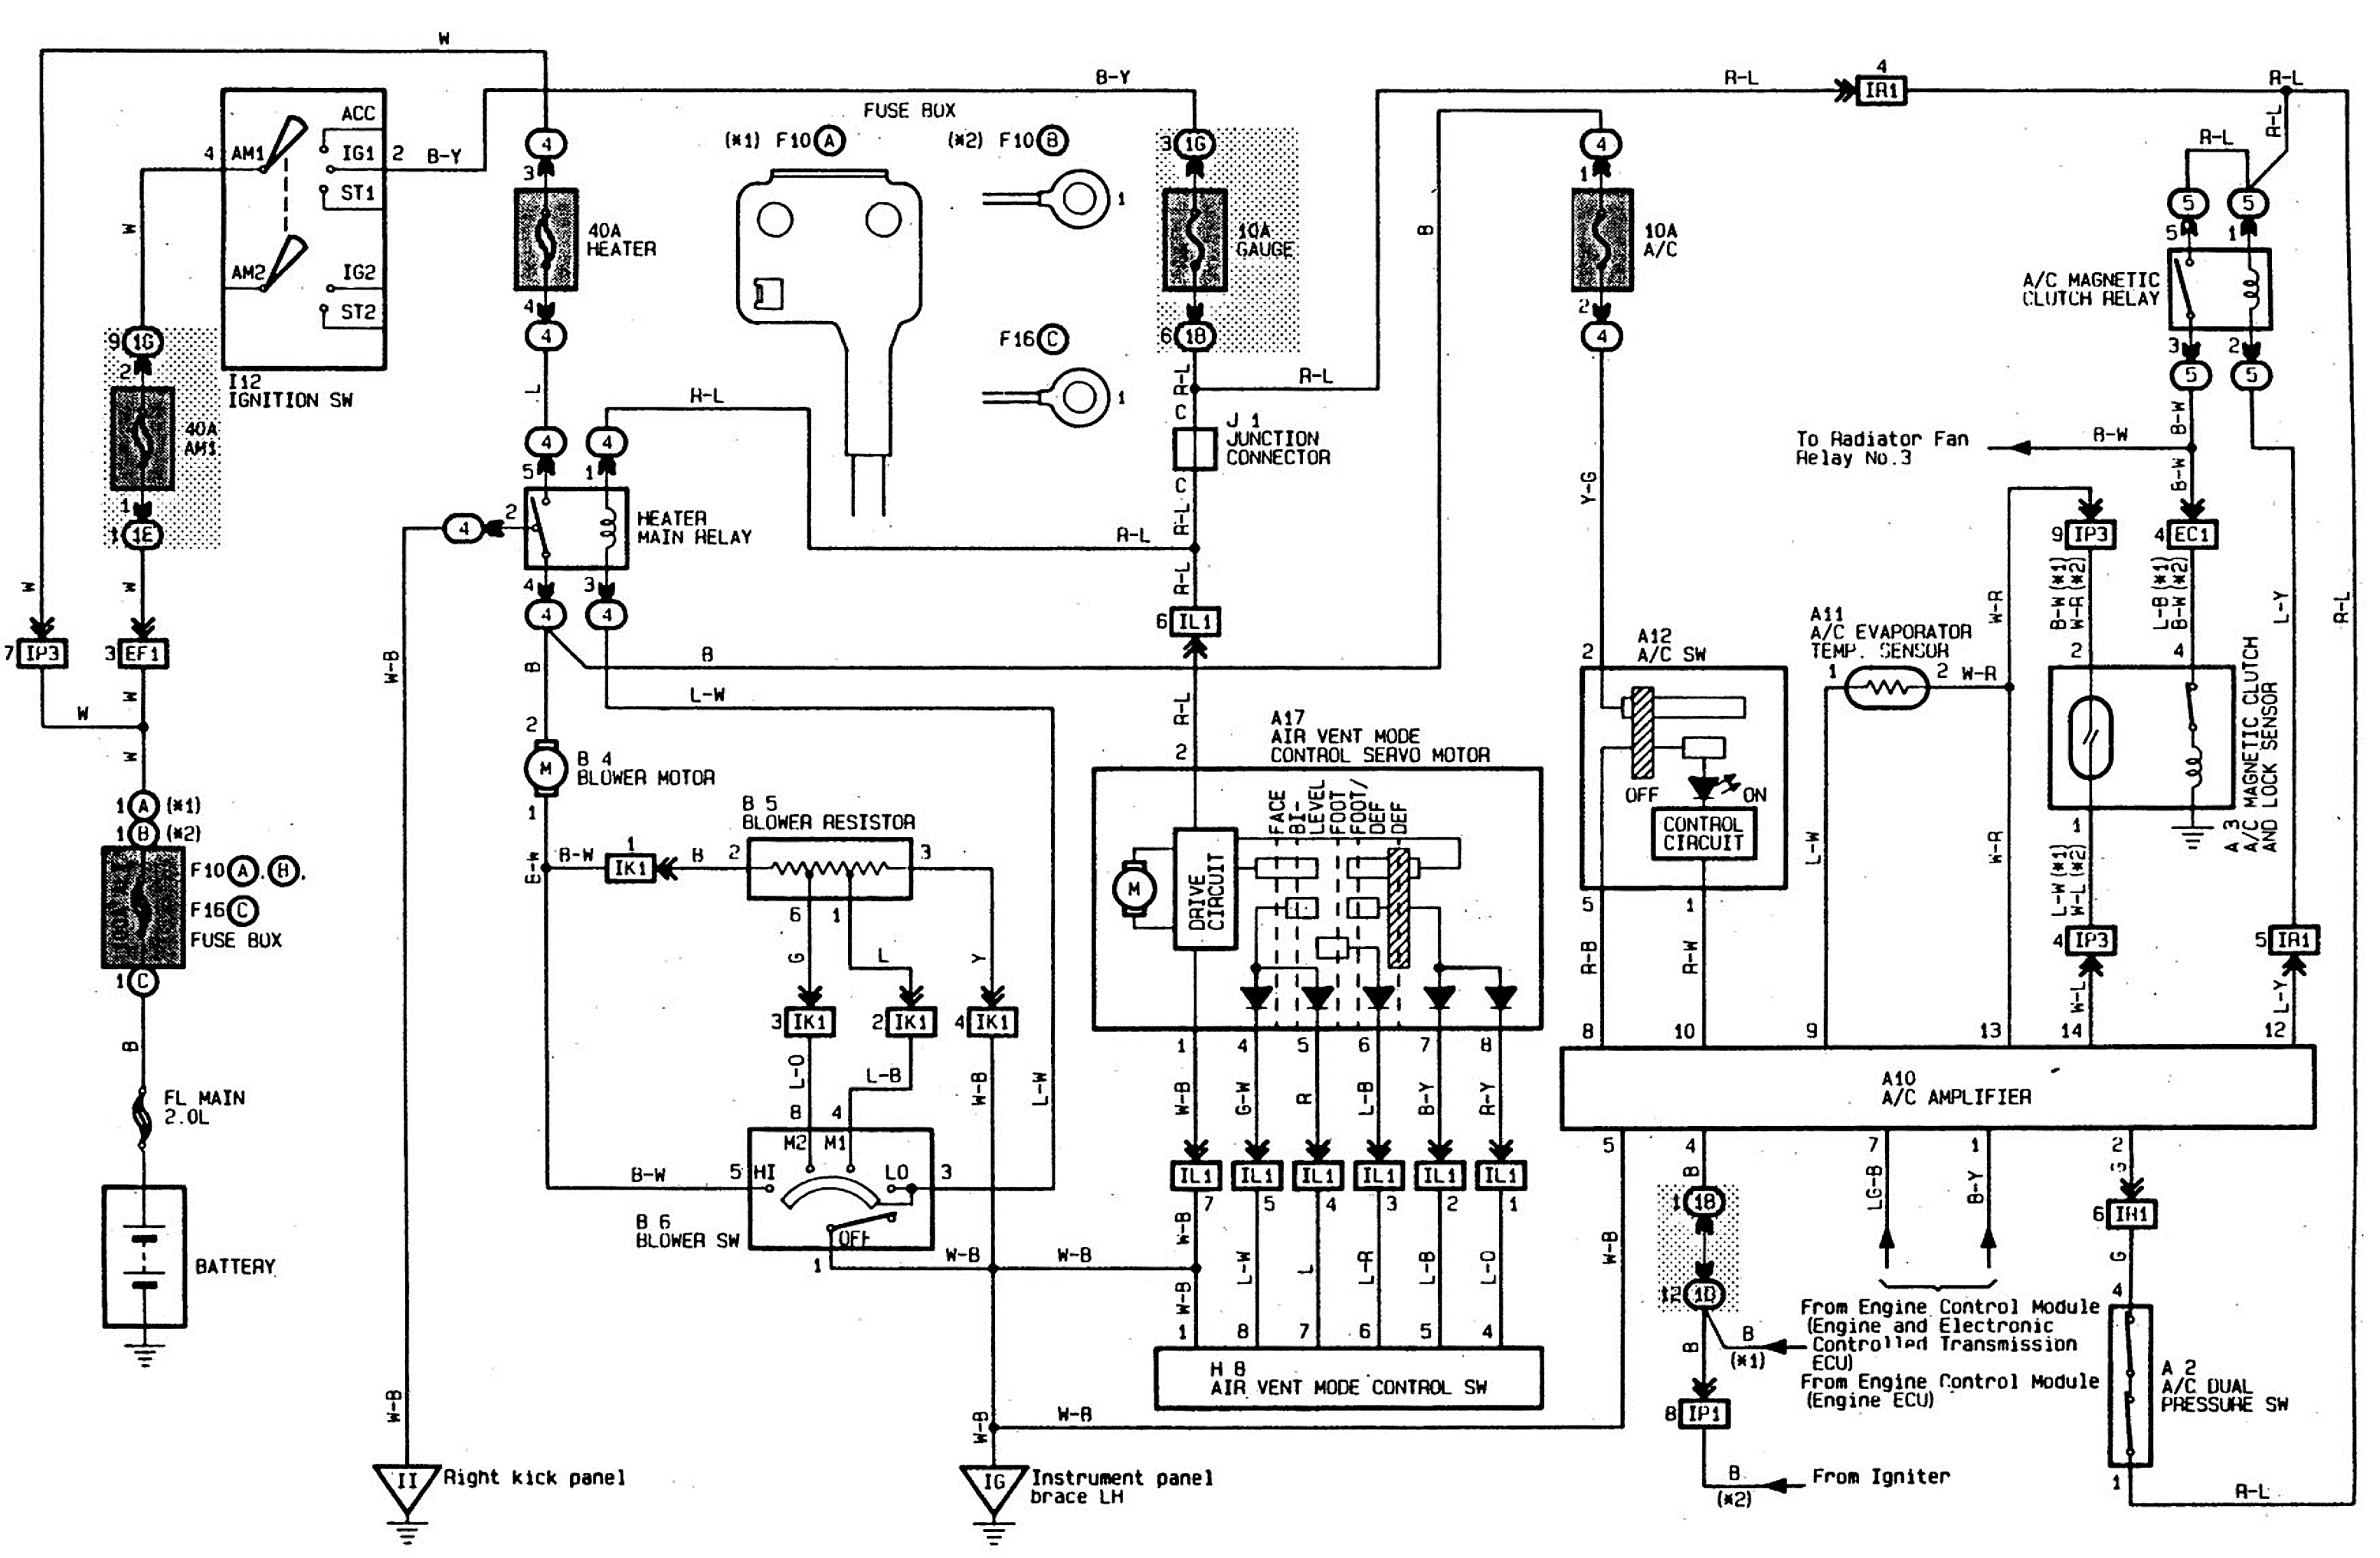 92 Toyota Camry Cooling Fan Wiring Diagram Library 01 2 Fans Ac 1994 6 Cyl Radiator Comes On Immediately Nation